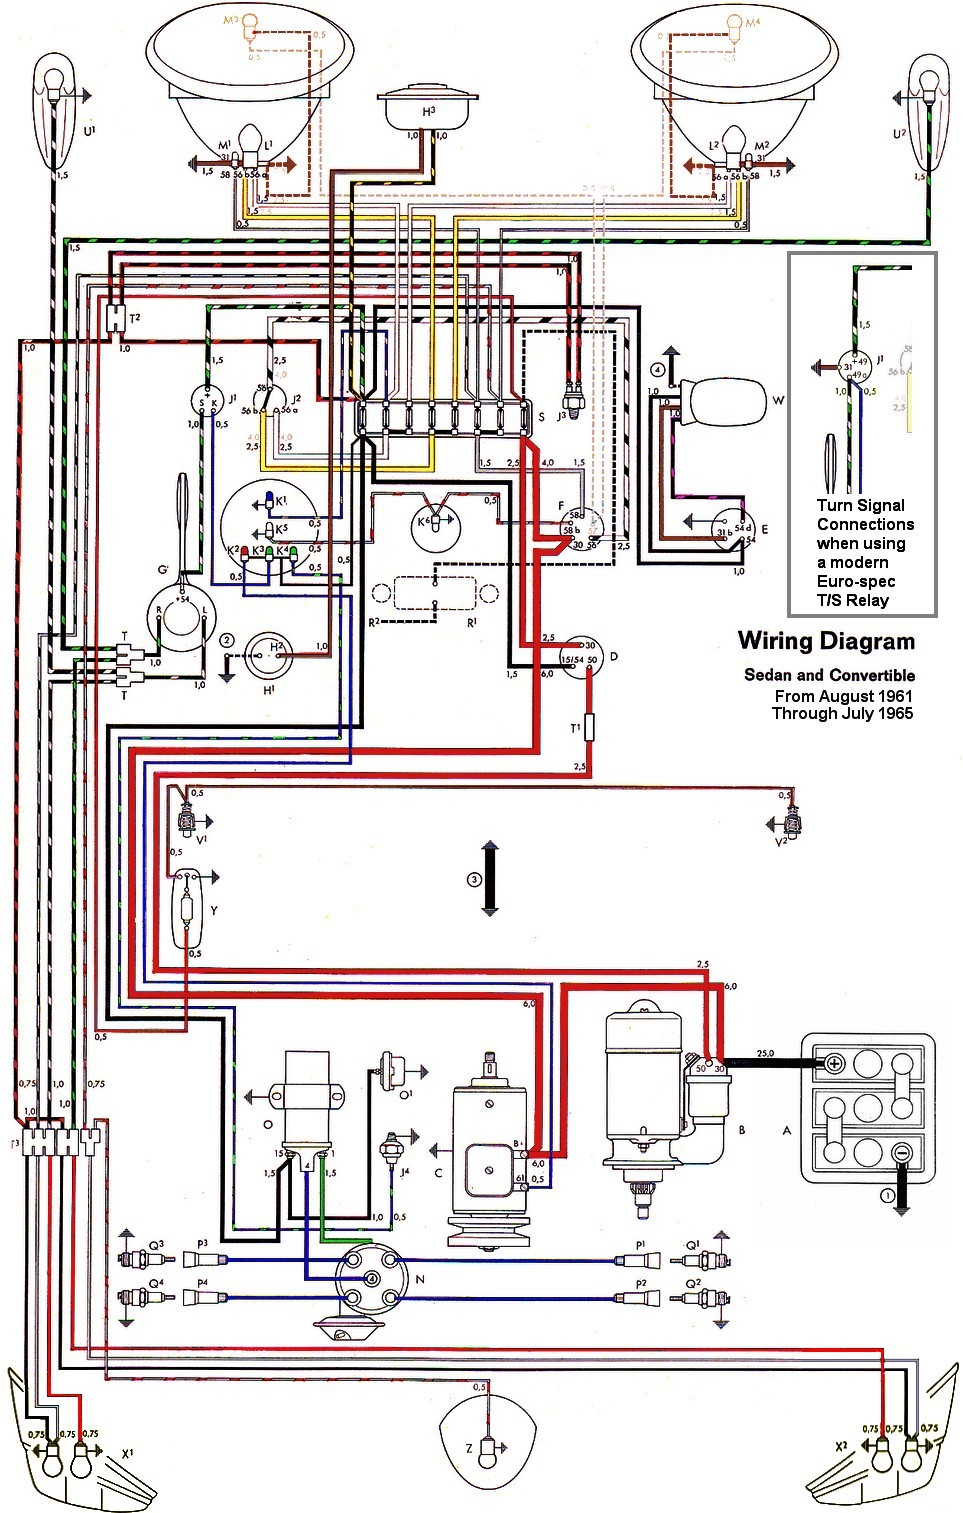 251652632013 moreover 71690 Indicator Wiring Diagram as well Watch furthermore 30PICT2 in addition Viewtopic. on 72 vw super beetle